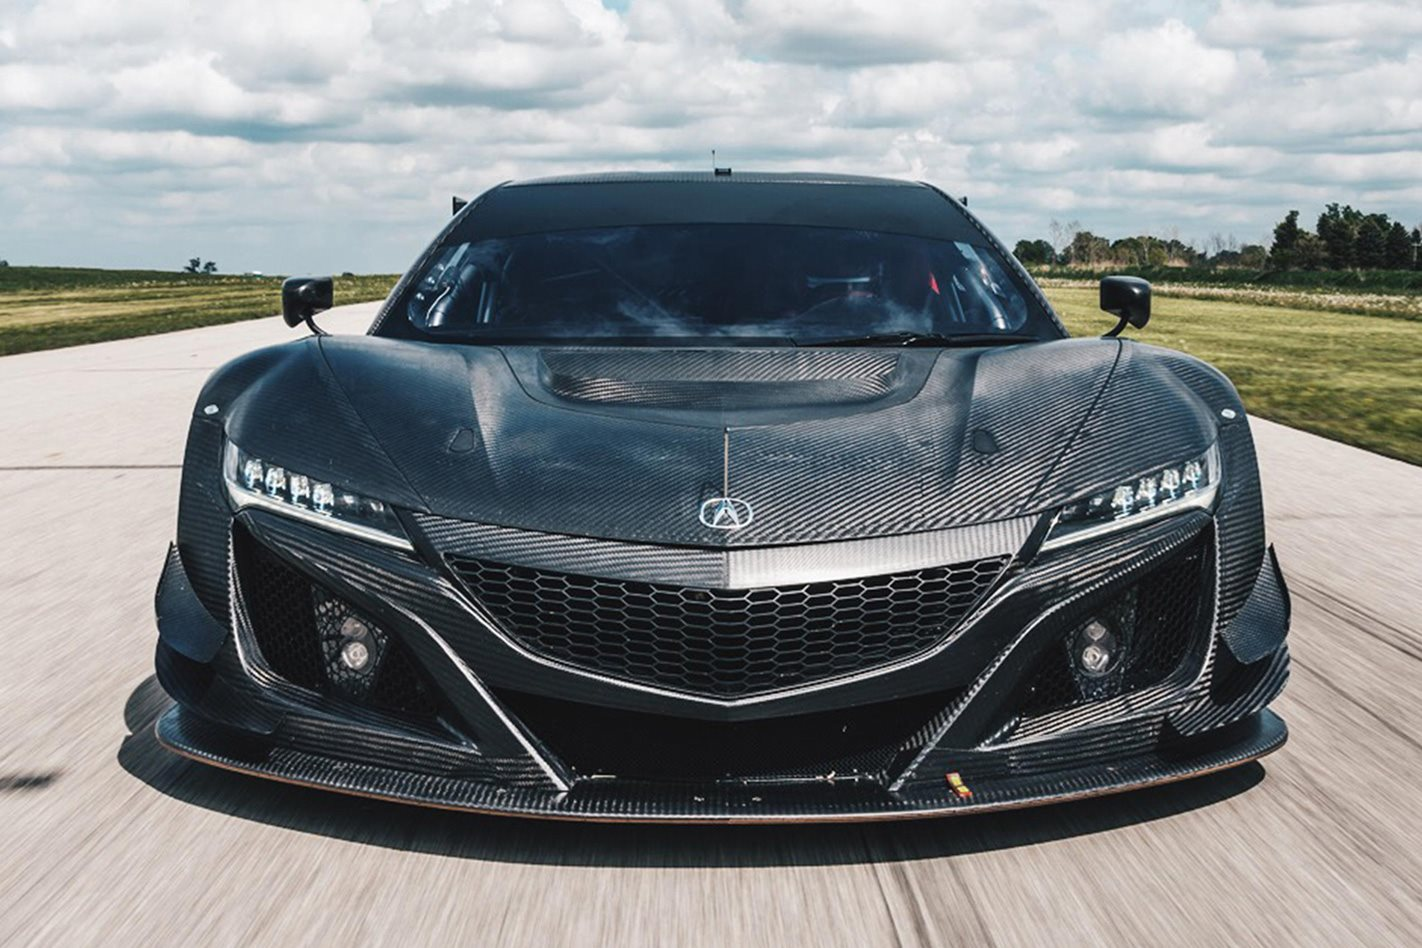 Honda NSX GT3 race car front